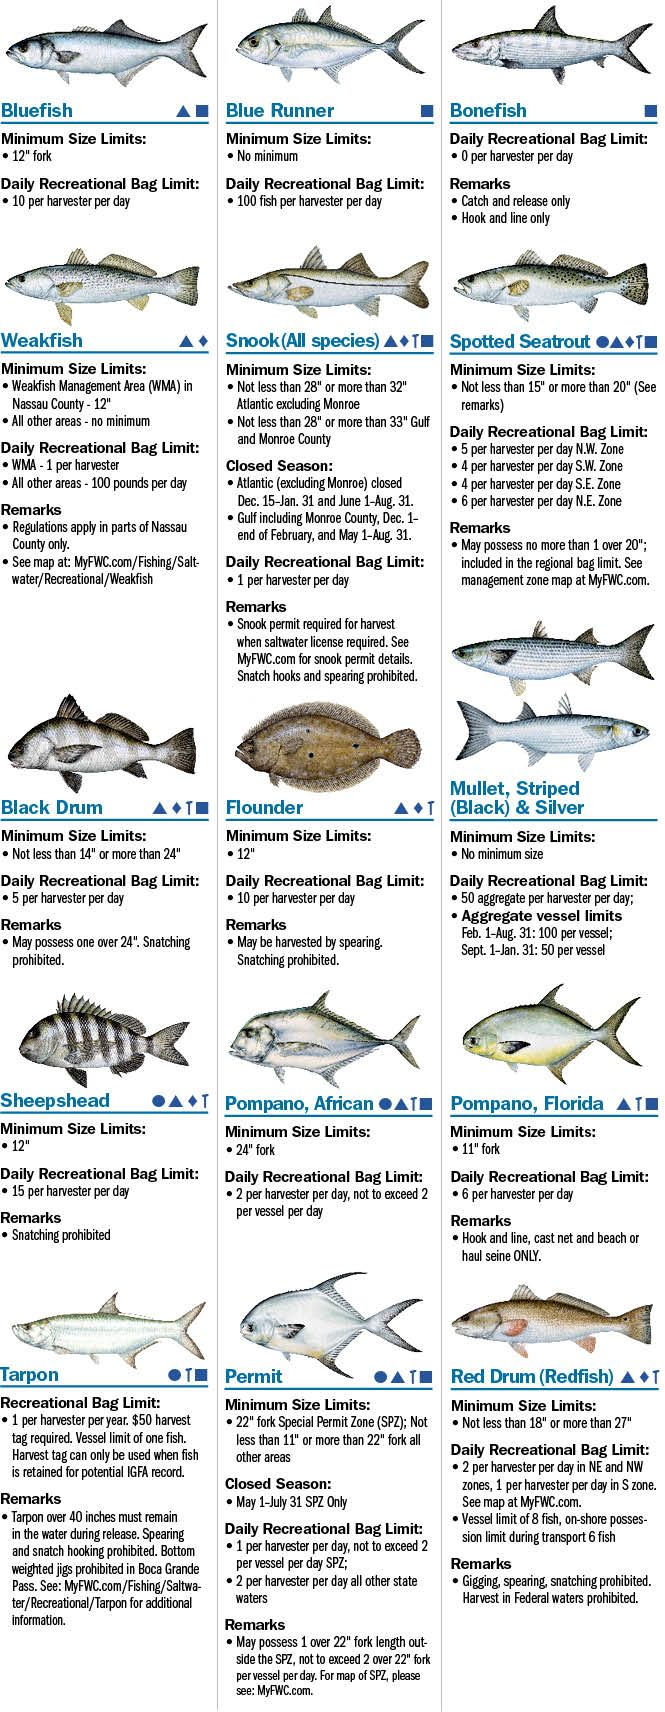 Coastal species florida saltwater fishing regulations for Fishing license florida